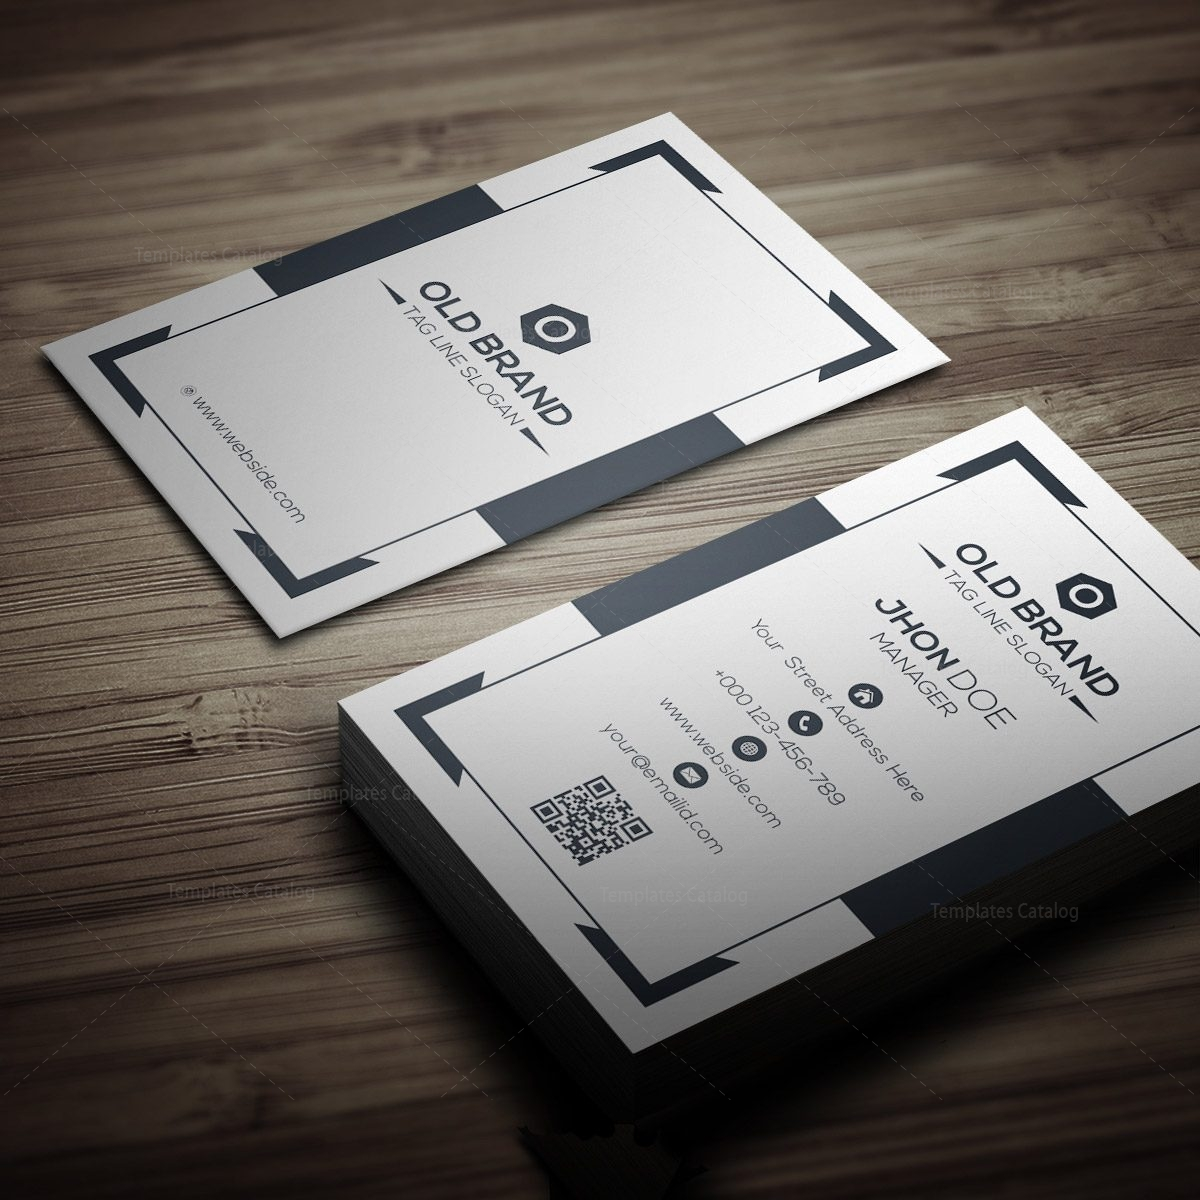 Classic vertical business card template 000271 template catalog classic vertical business card template accmission